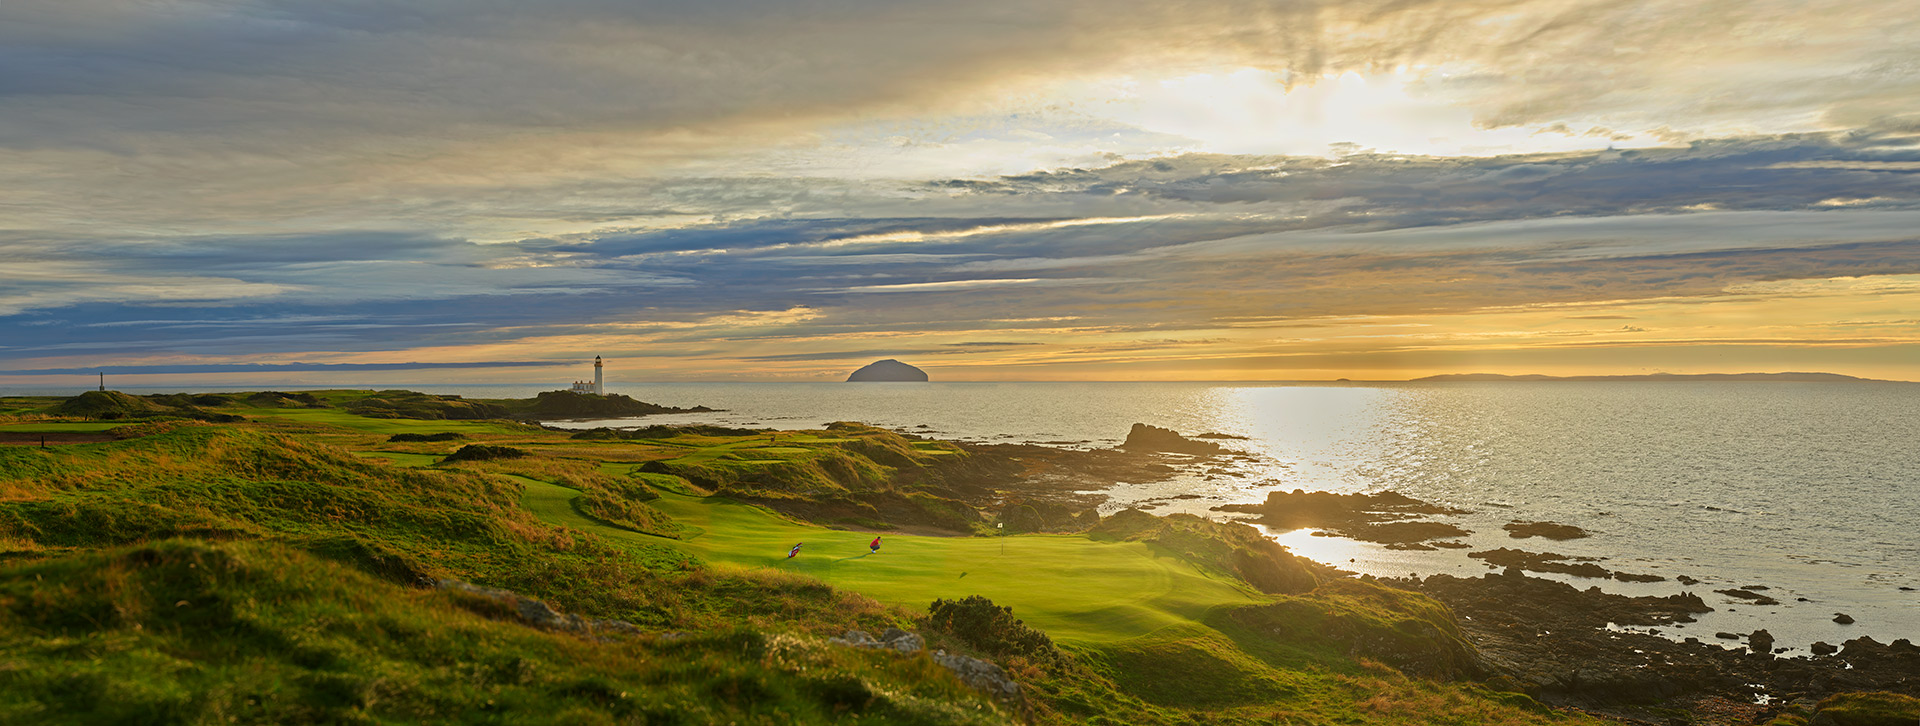 Simon Stock: Turnberry GigaPixel  Project